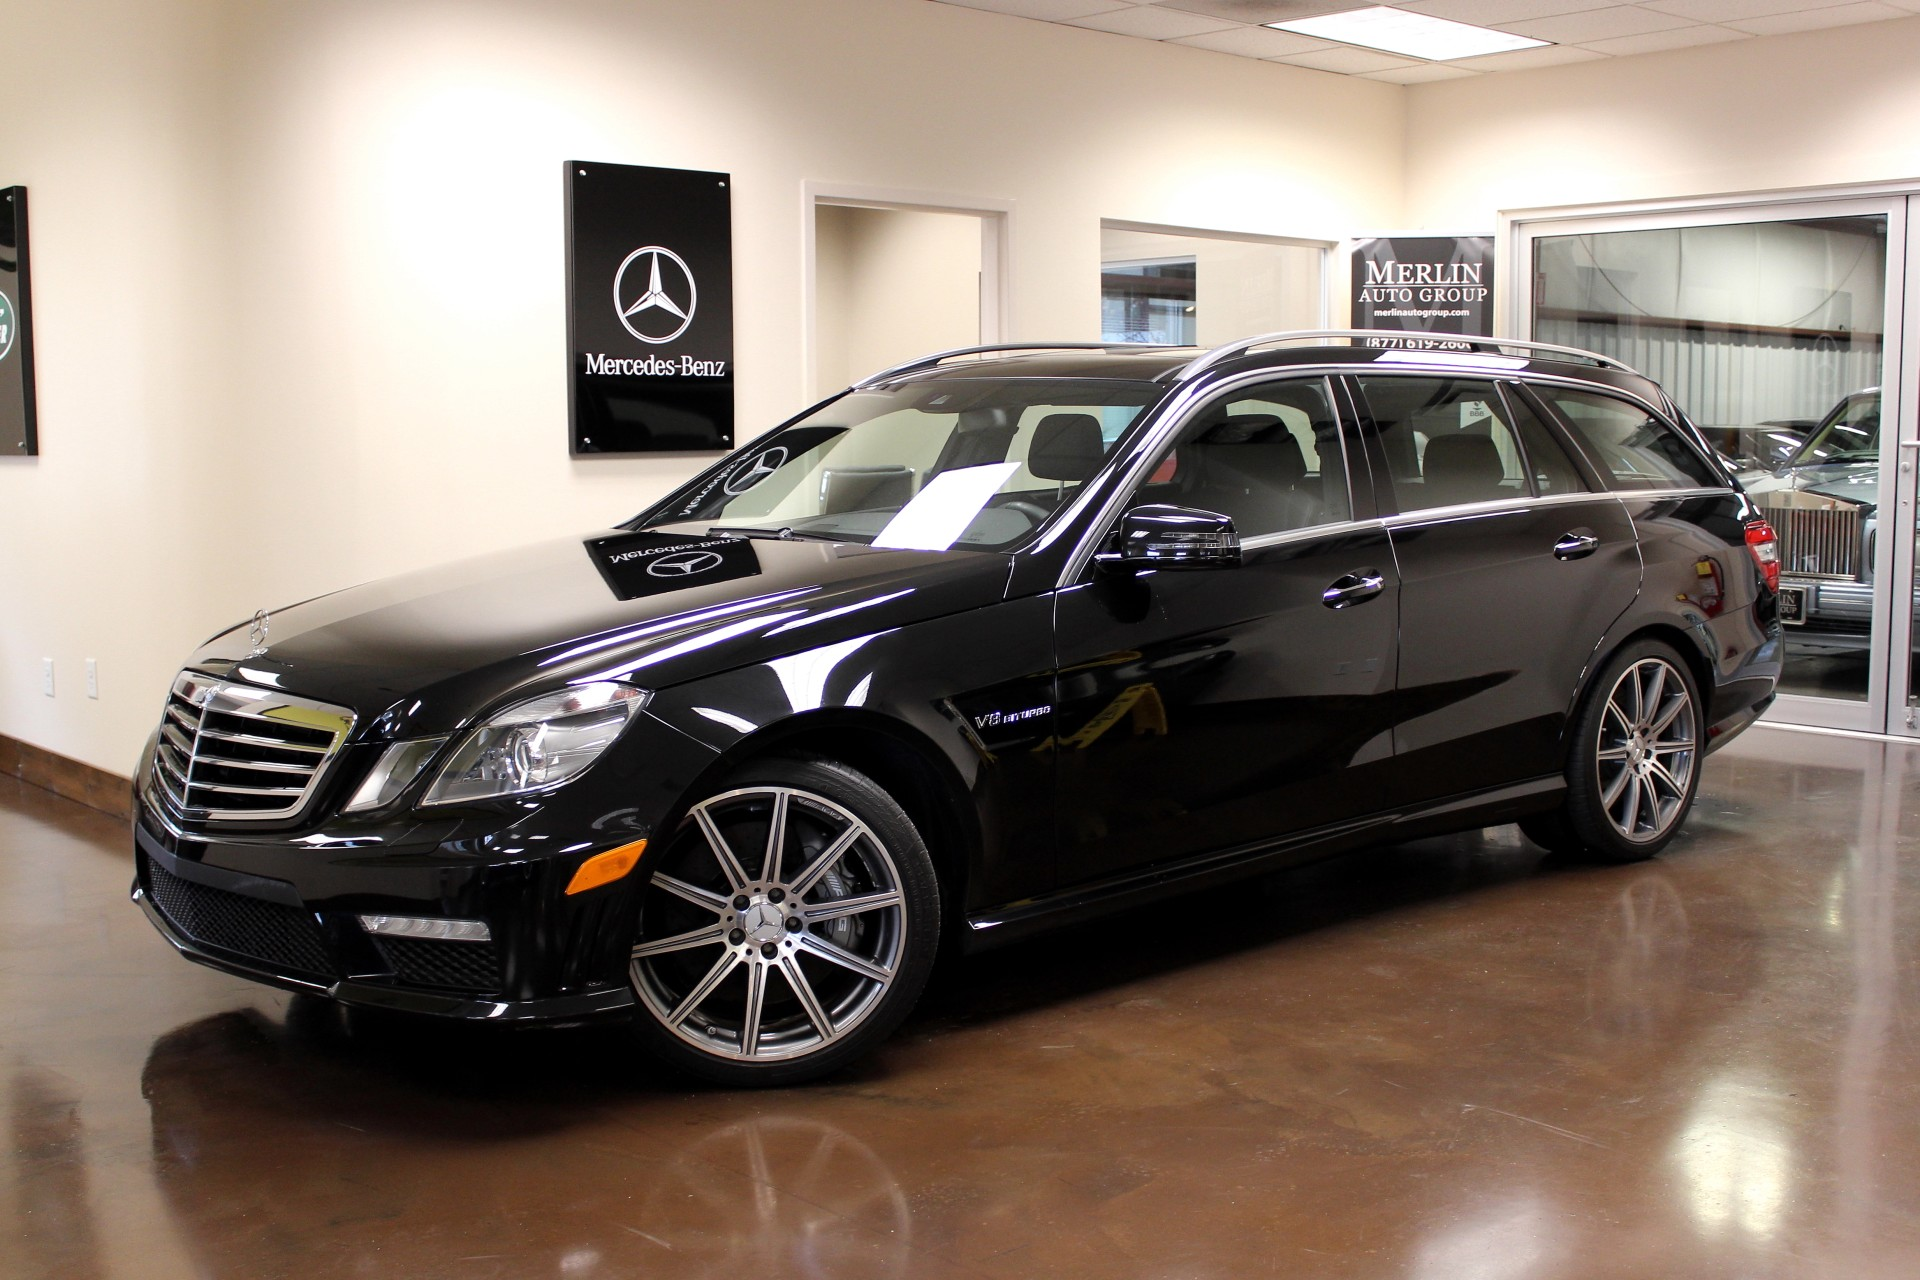 2013 mercedes benz e class e63 amg wagon for sale cargurus